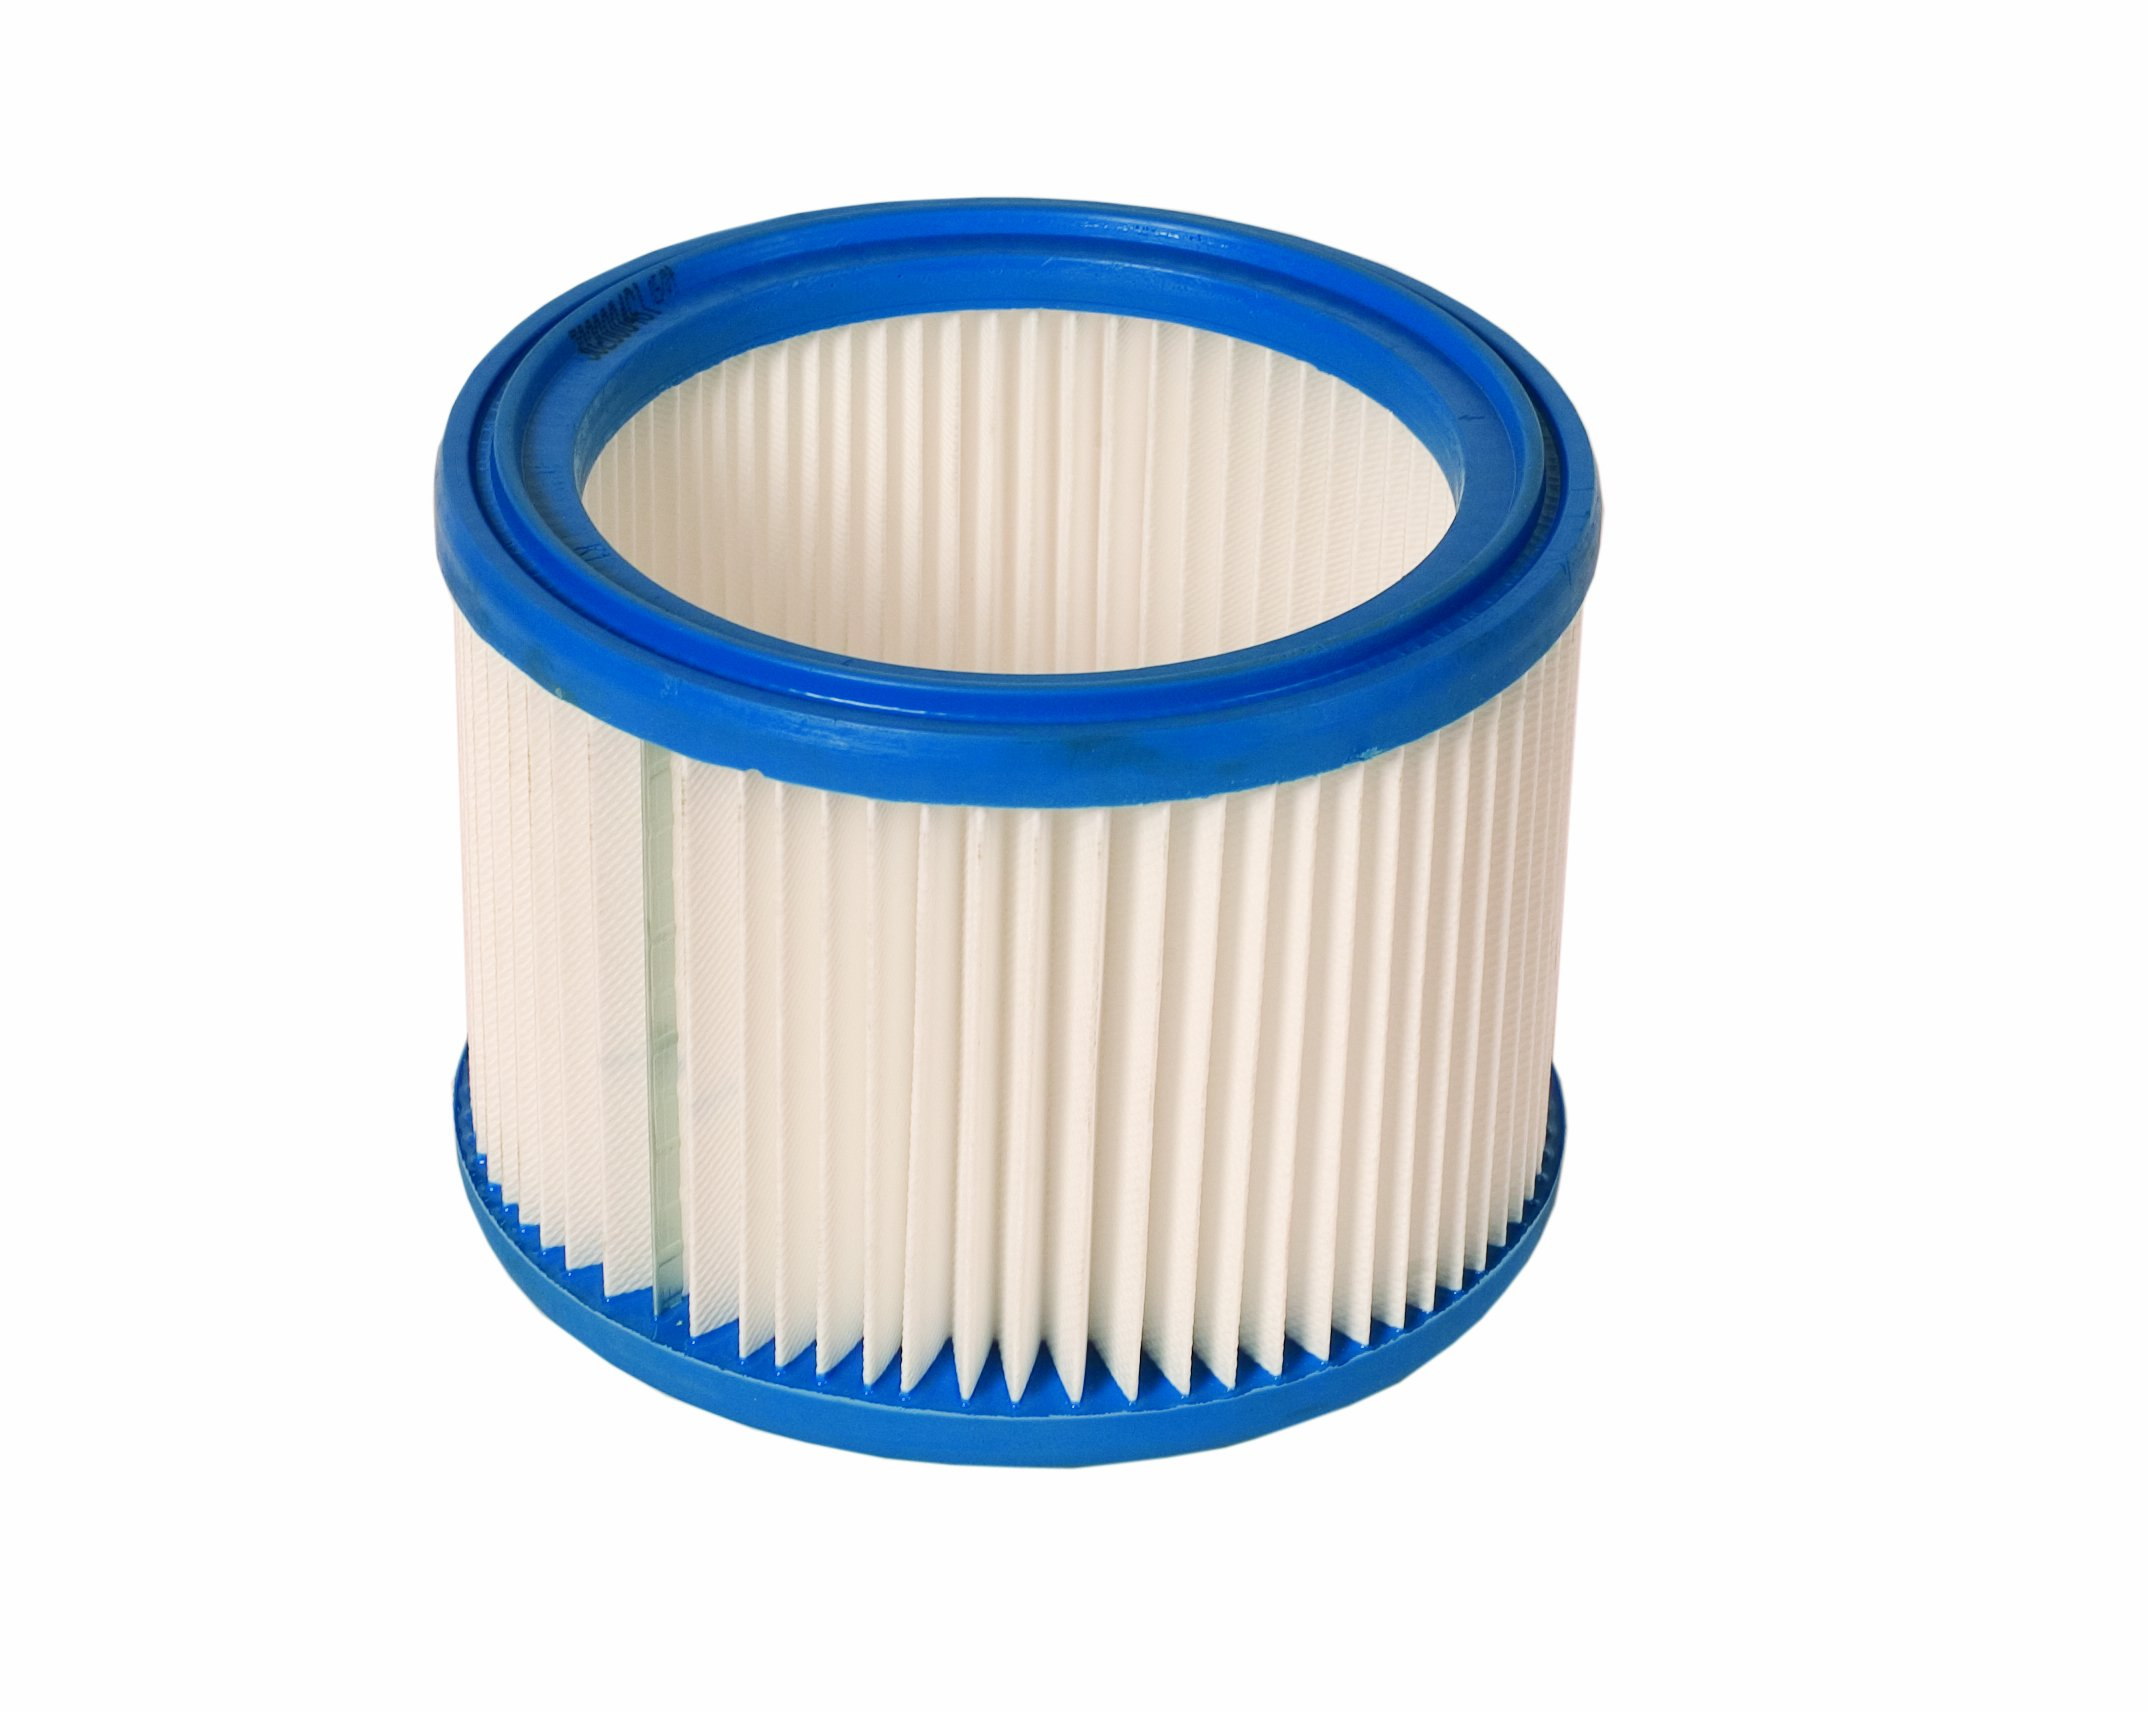 Mirka MV-412FE Filter Element for MV-412 and MV-912 Vacuum by Mirka